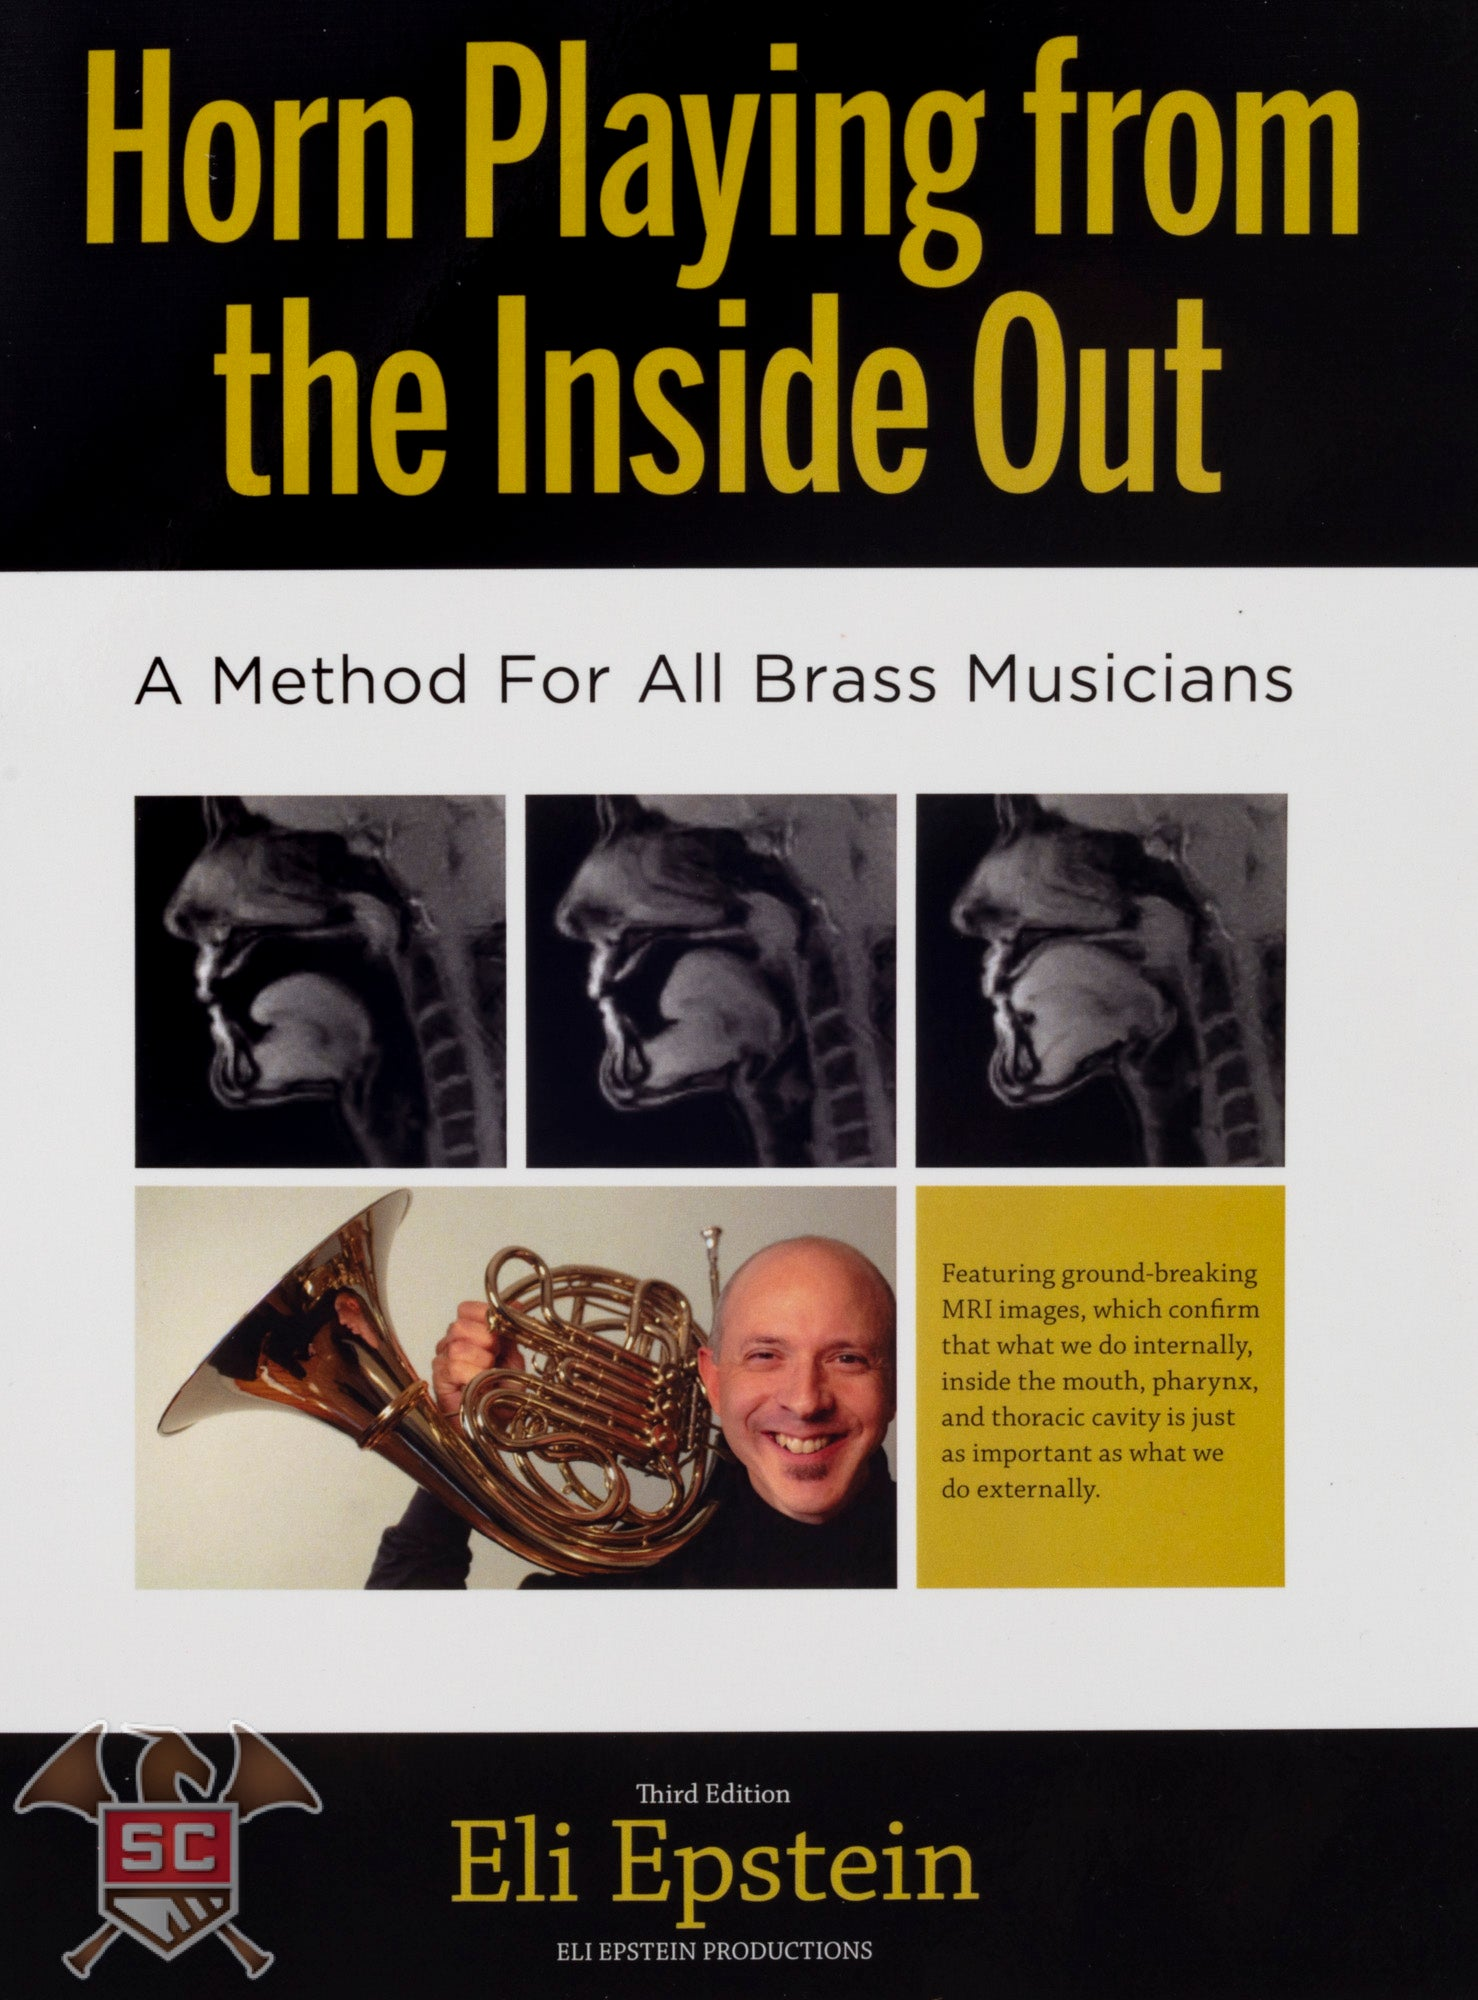 Horn Playing from the Inside Out by Eli Epstein